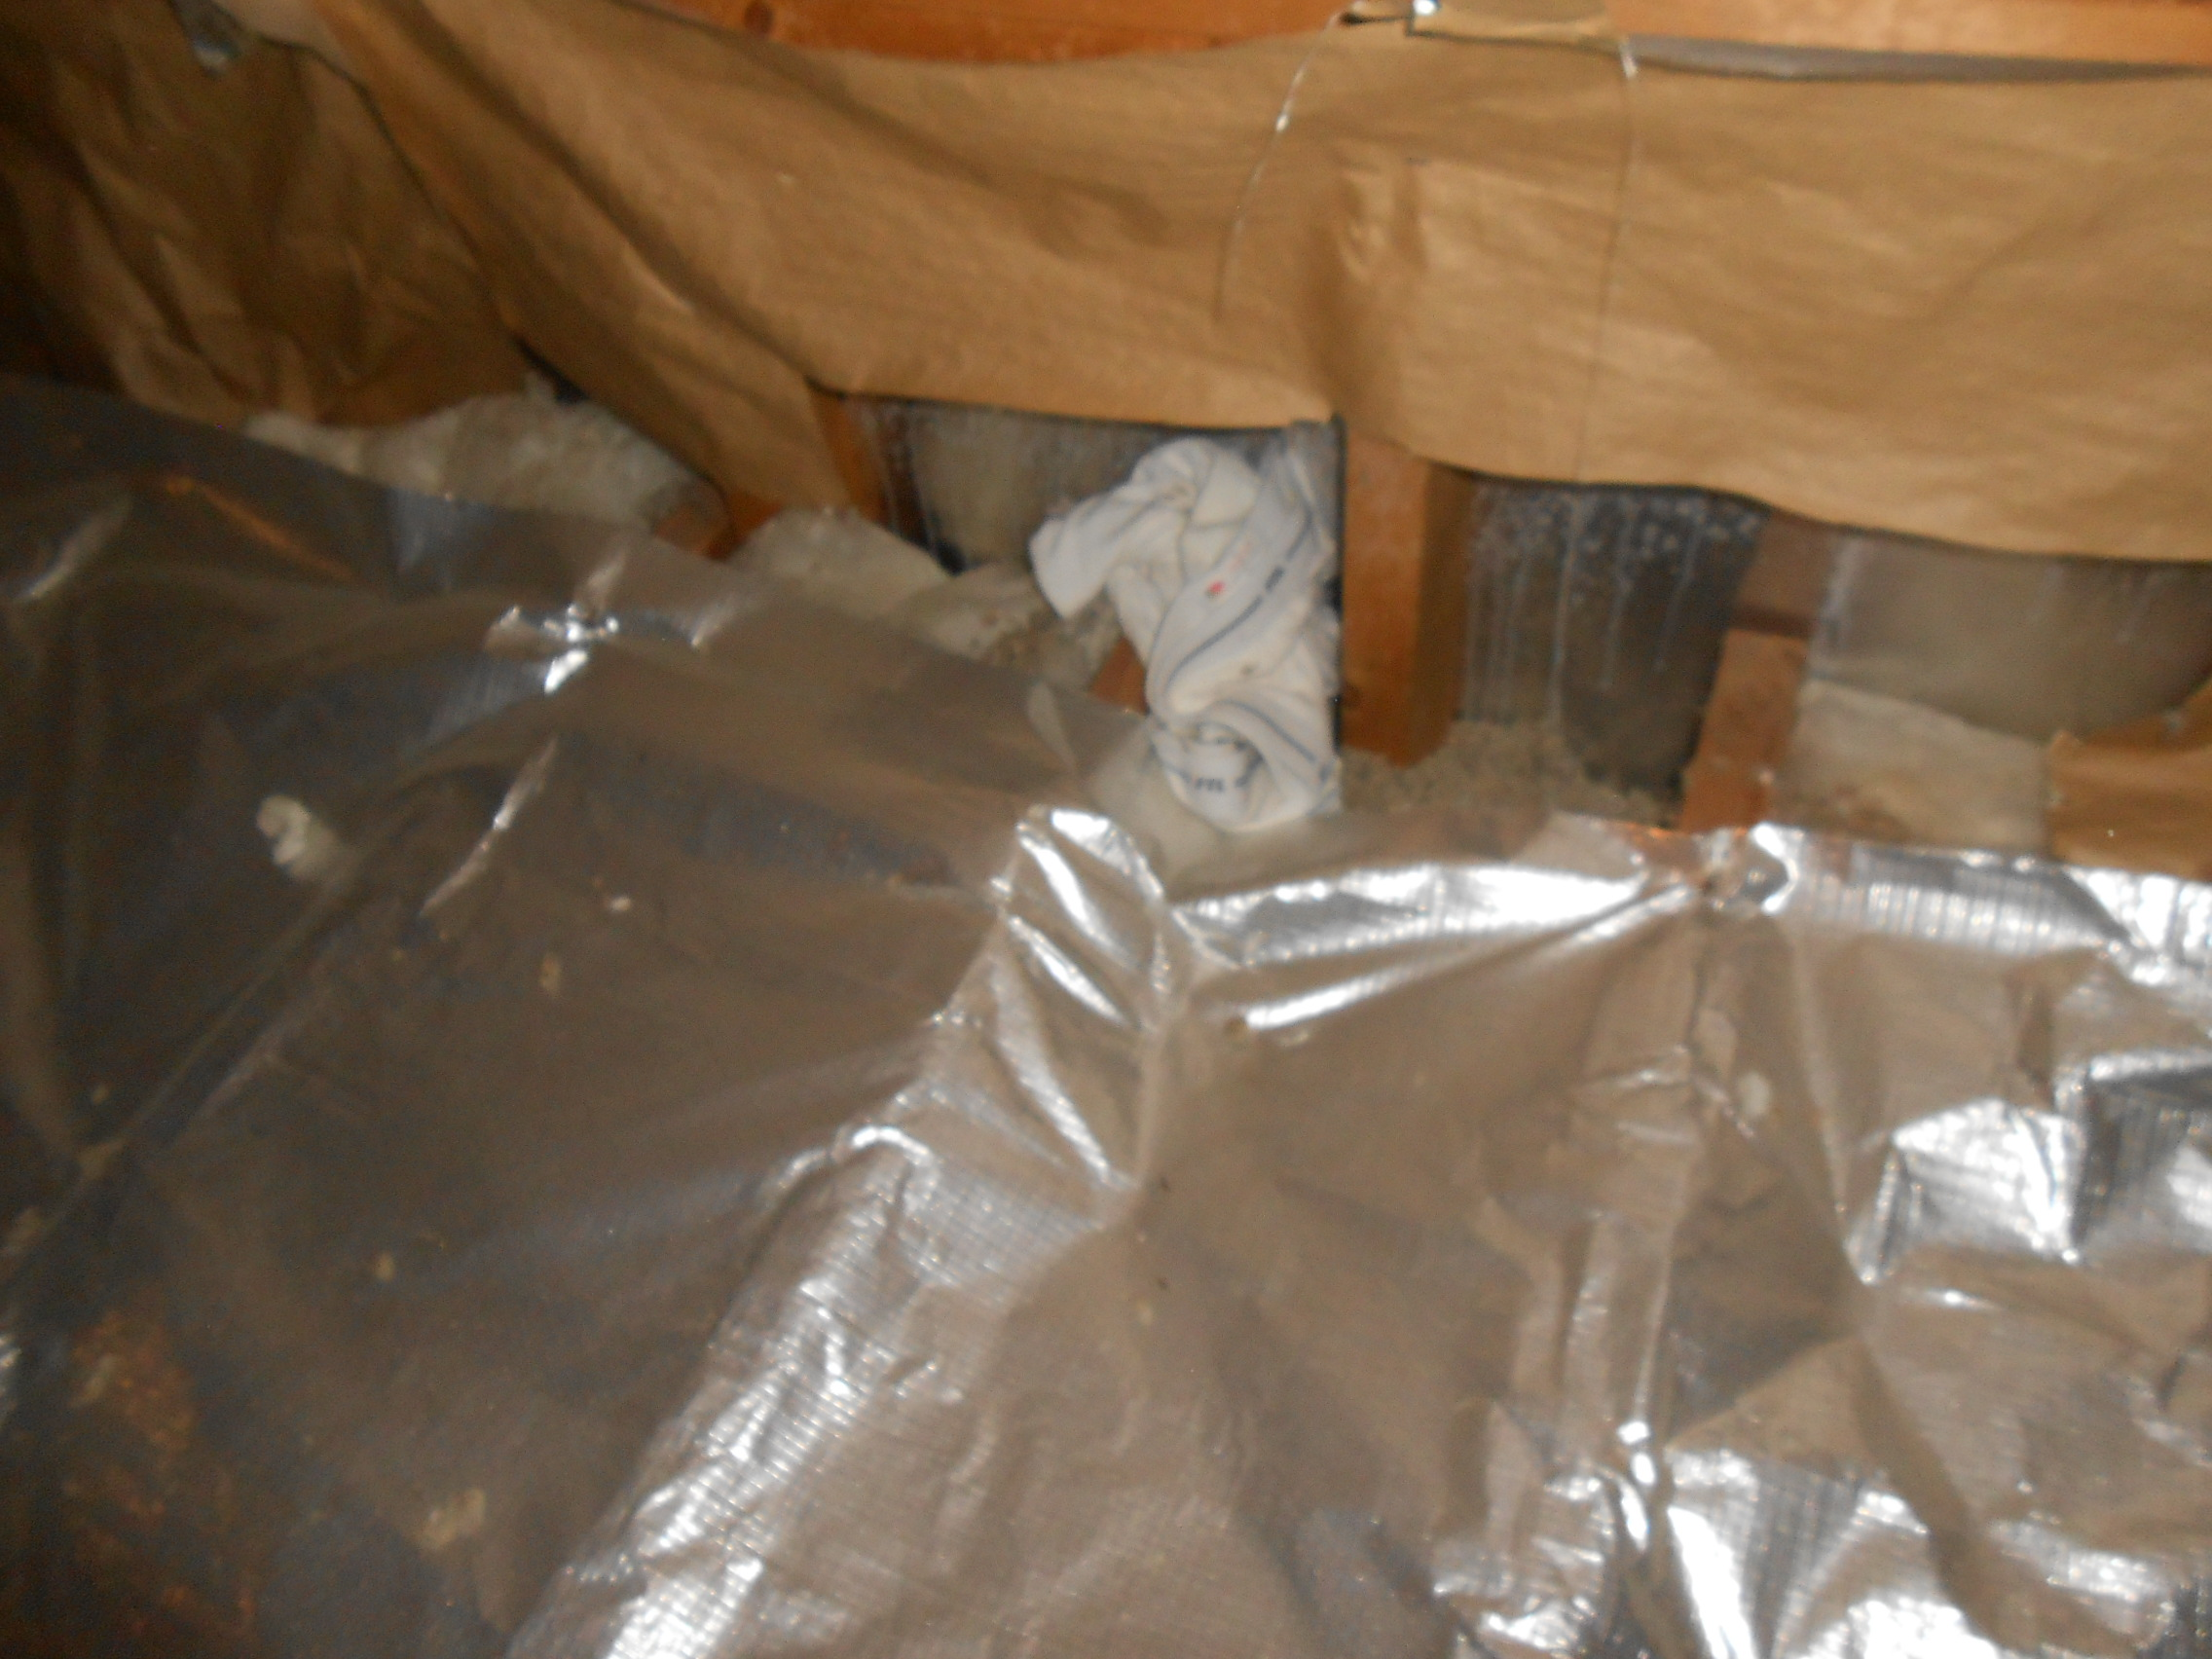 Insulation viewed during a home inspection of the attic